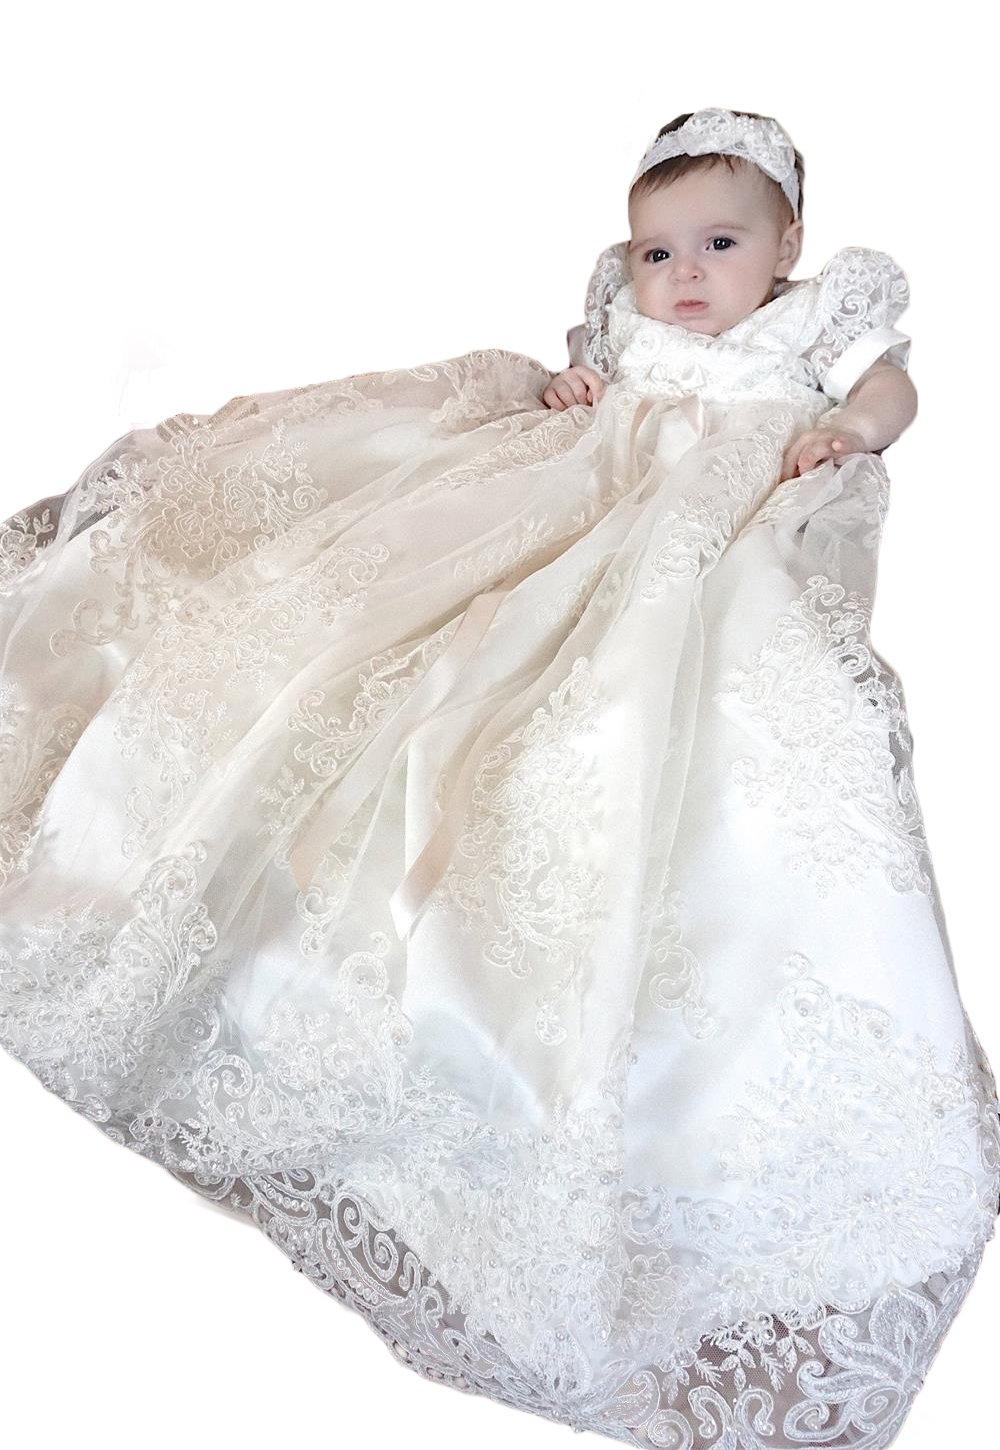 YSMO Flower Lace Christening Gowns For Girls With Bonnet Long Infant Toddler Baptism Dresses